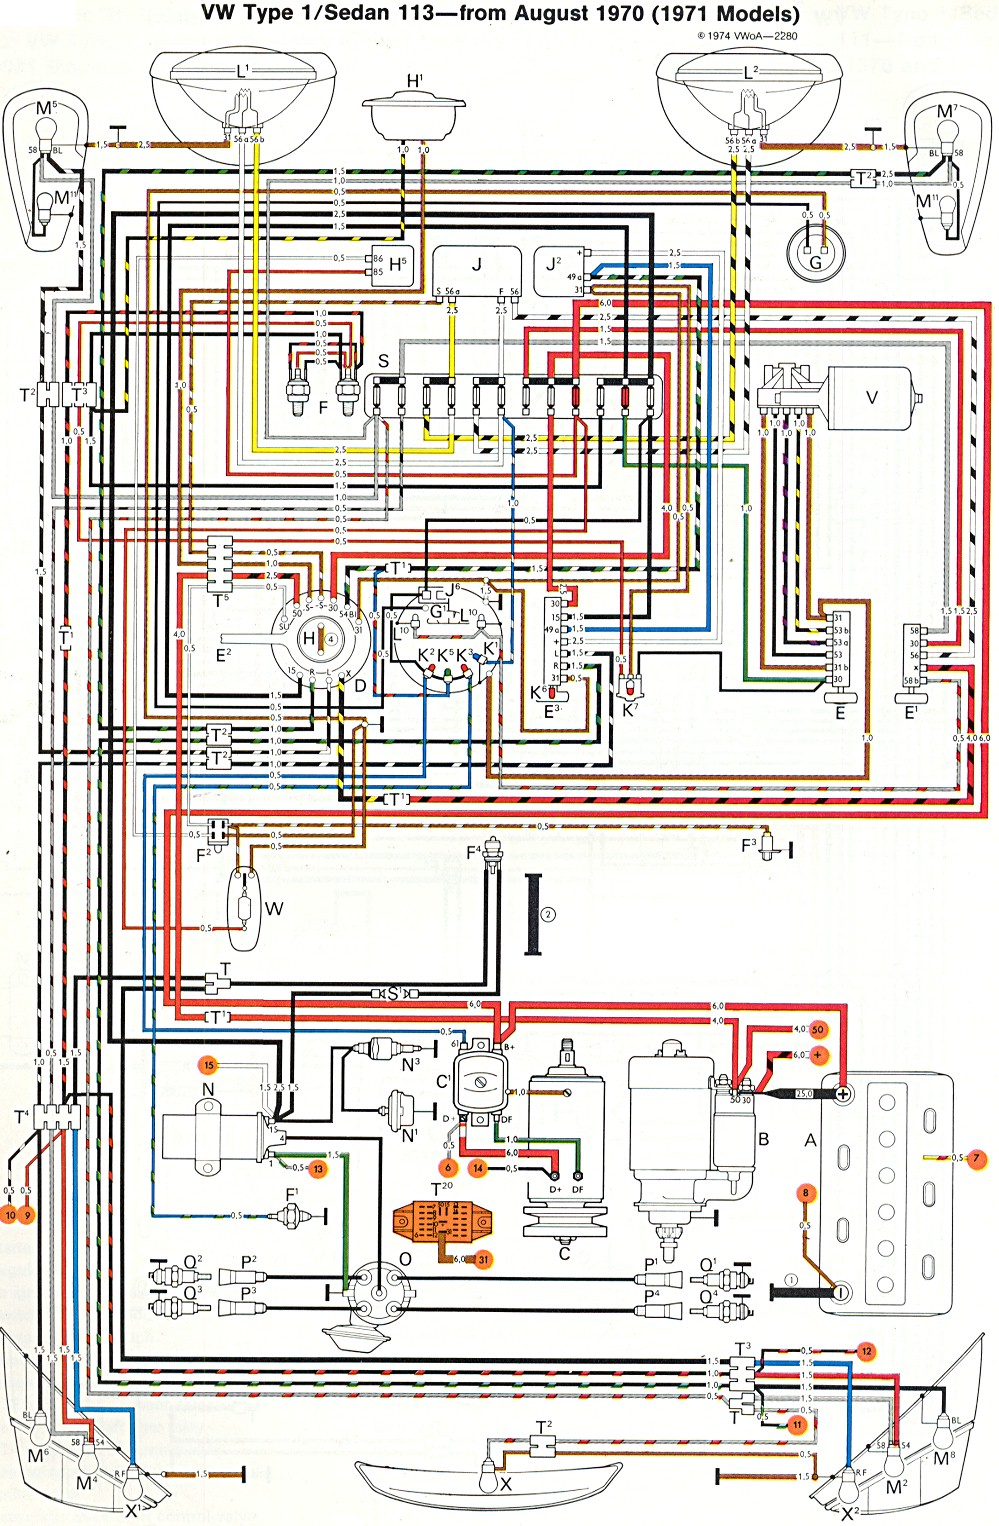 bug_super_71 1971 super beetle wiring diagram thegoldenbug com 1970 vw bug wiring diagram at creativeand.co